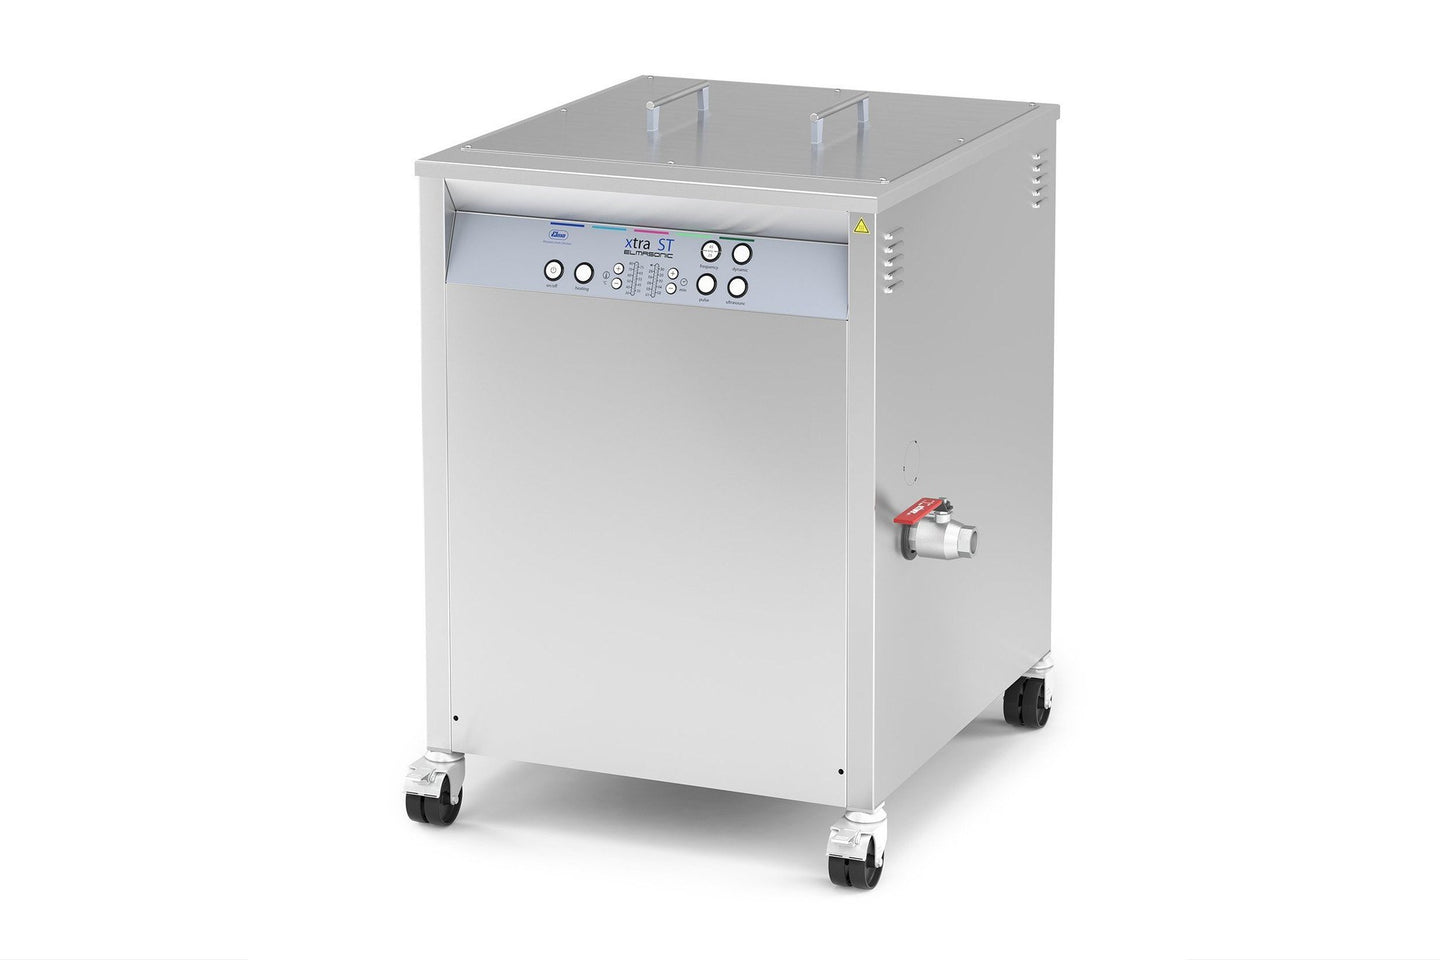 Elmasonic Xtra ST1600H | Industrial Ultrasonic Cleaner | 43 GAL - leadsonics